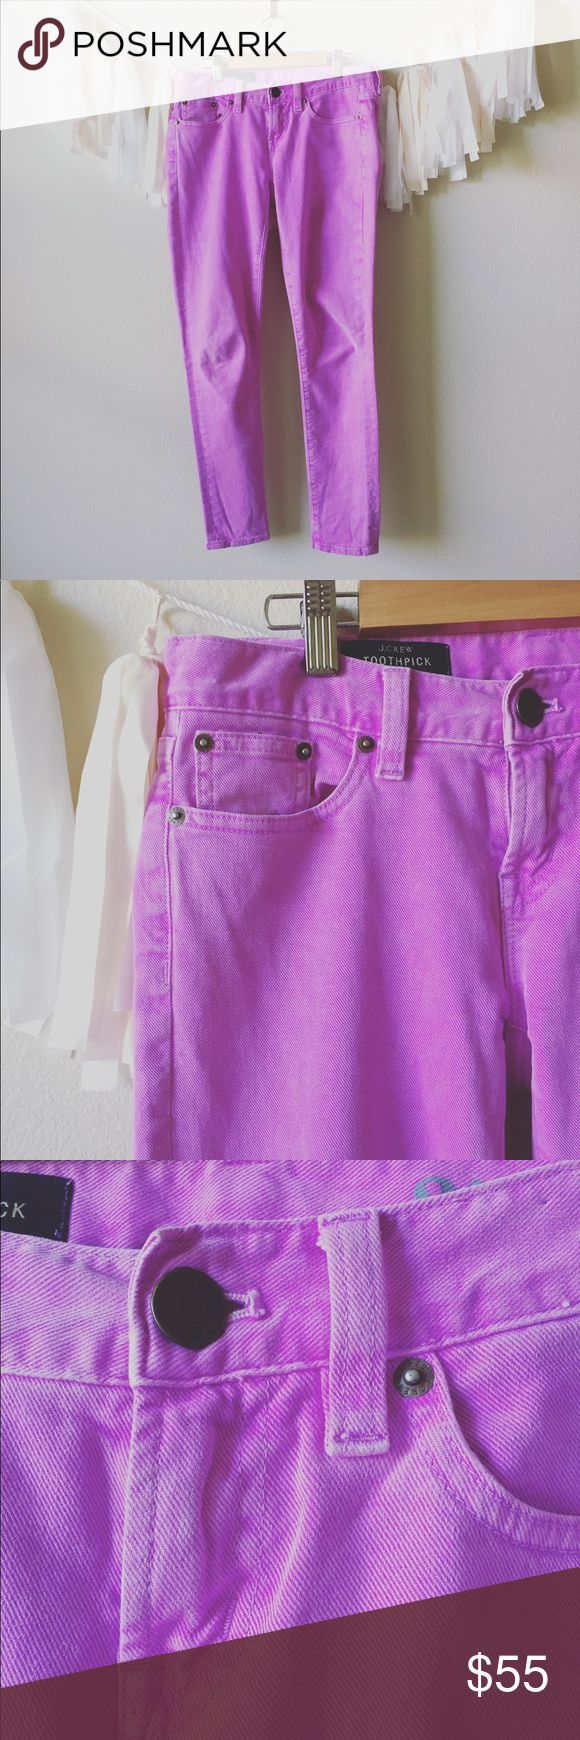 """JCREW TOOTHPICK SKINNY JEANS NEON PURPLE SIZE 25 -Brand: J.Crew  - Size: 25  -Color(s): Neon Purple  -Measurements:  Top to Bottom:  Waist: 15 1/2"""" Inseam to Bottom: 27 1/2"""" Ankle: 5""""  FUN FACTS!   - I ship every single day!  - All items come from a smoke free home! - Each item is sealed in a plastic ziplock bag to ensure your item is not damaged  - Feel free to ask questions or send offers! J. Crew Jeans Skinny"""